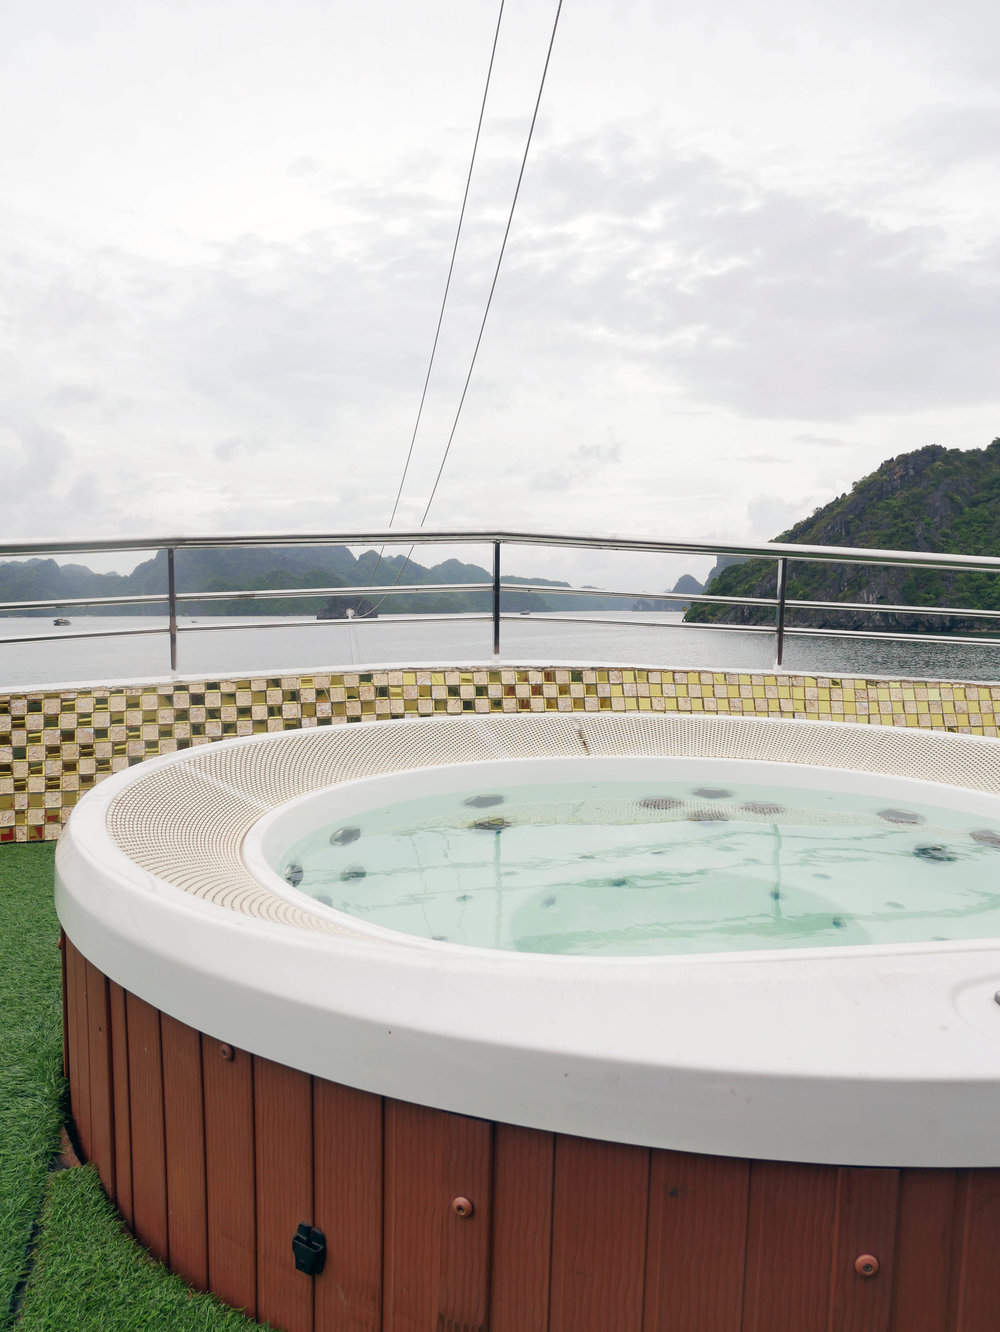 Jacuzzi on the middle deck